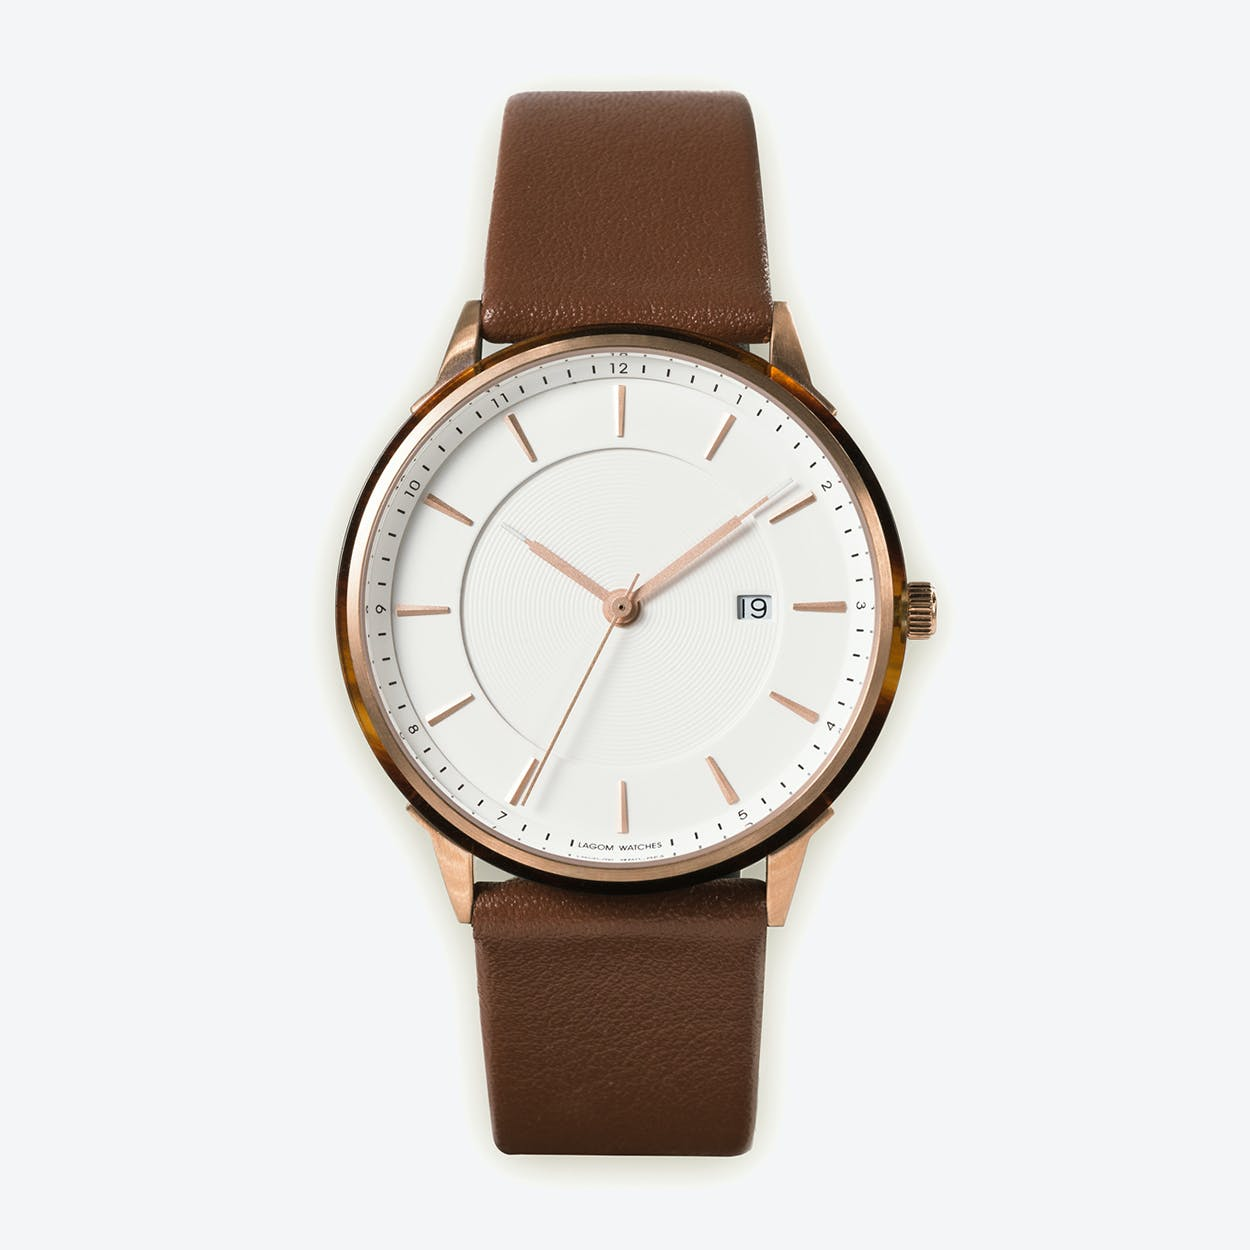 BÖRJA - Rose Gold Watch in Offwhite Face and Brown Leather Strap